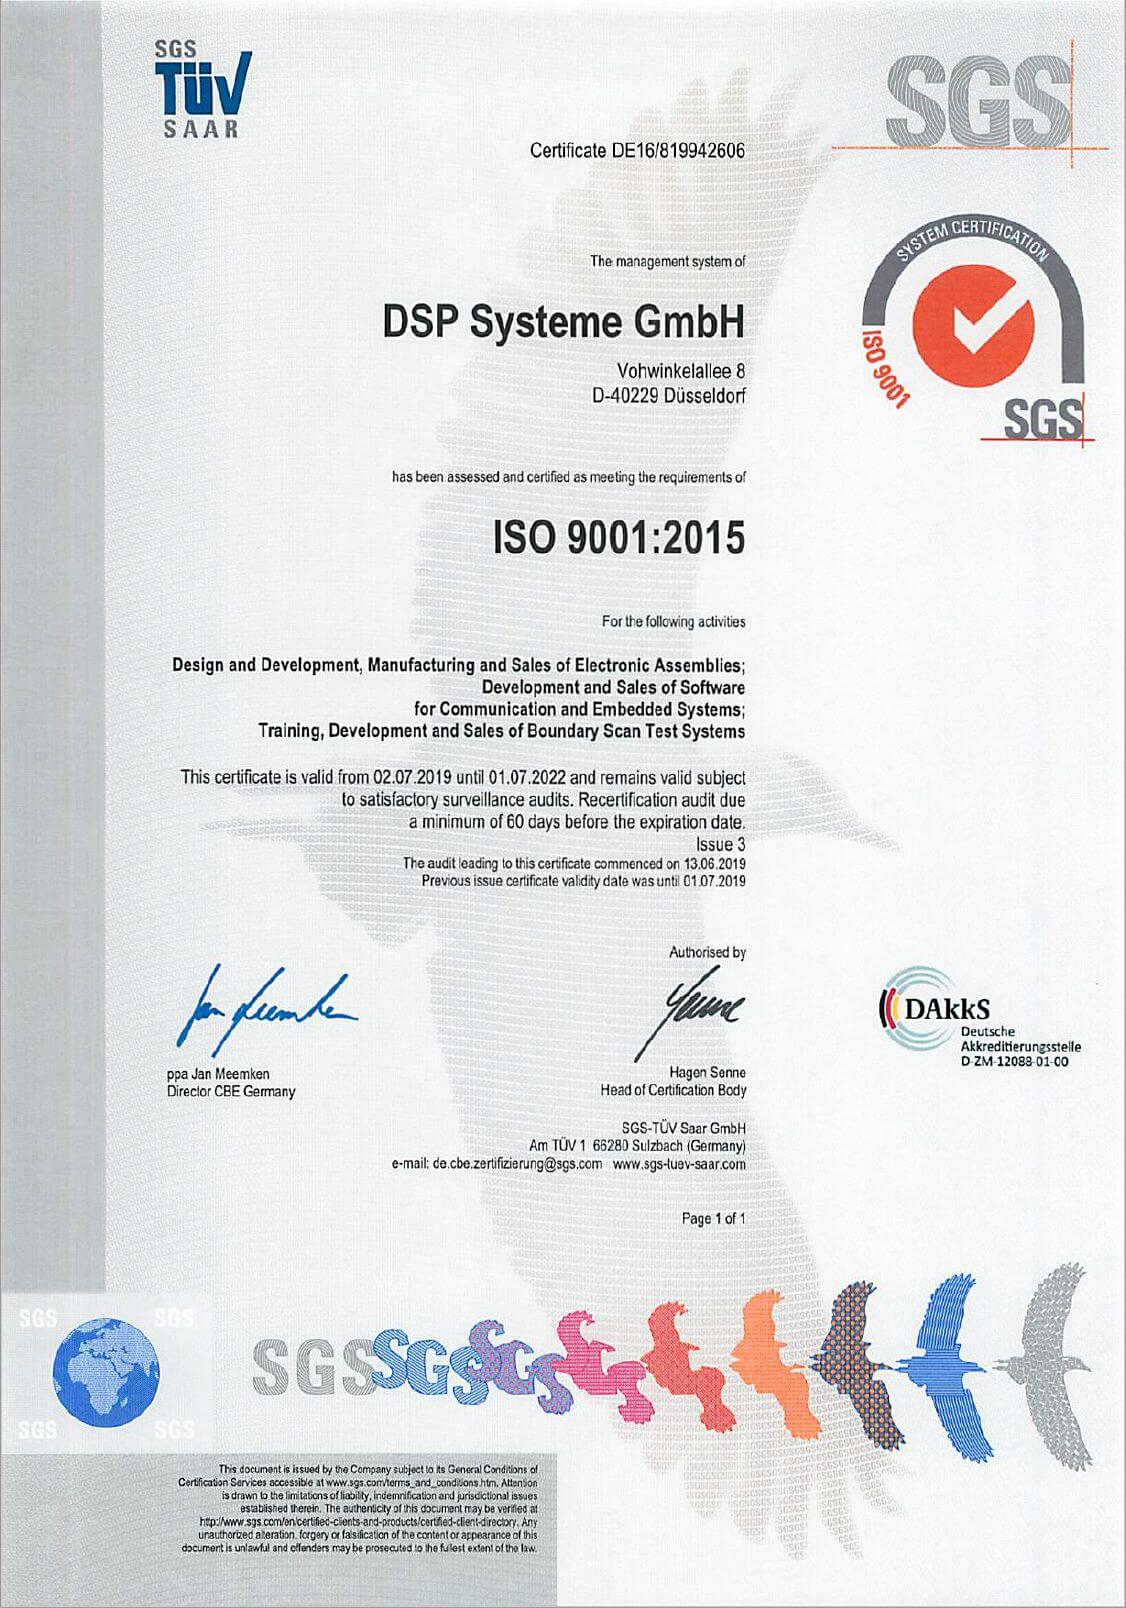 Certification per ISO9001-2015 for A.R. Bayer DSP Systeme GmbH